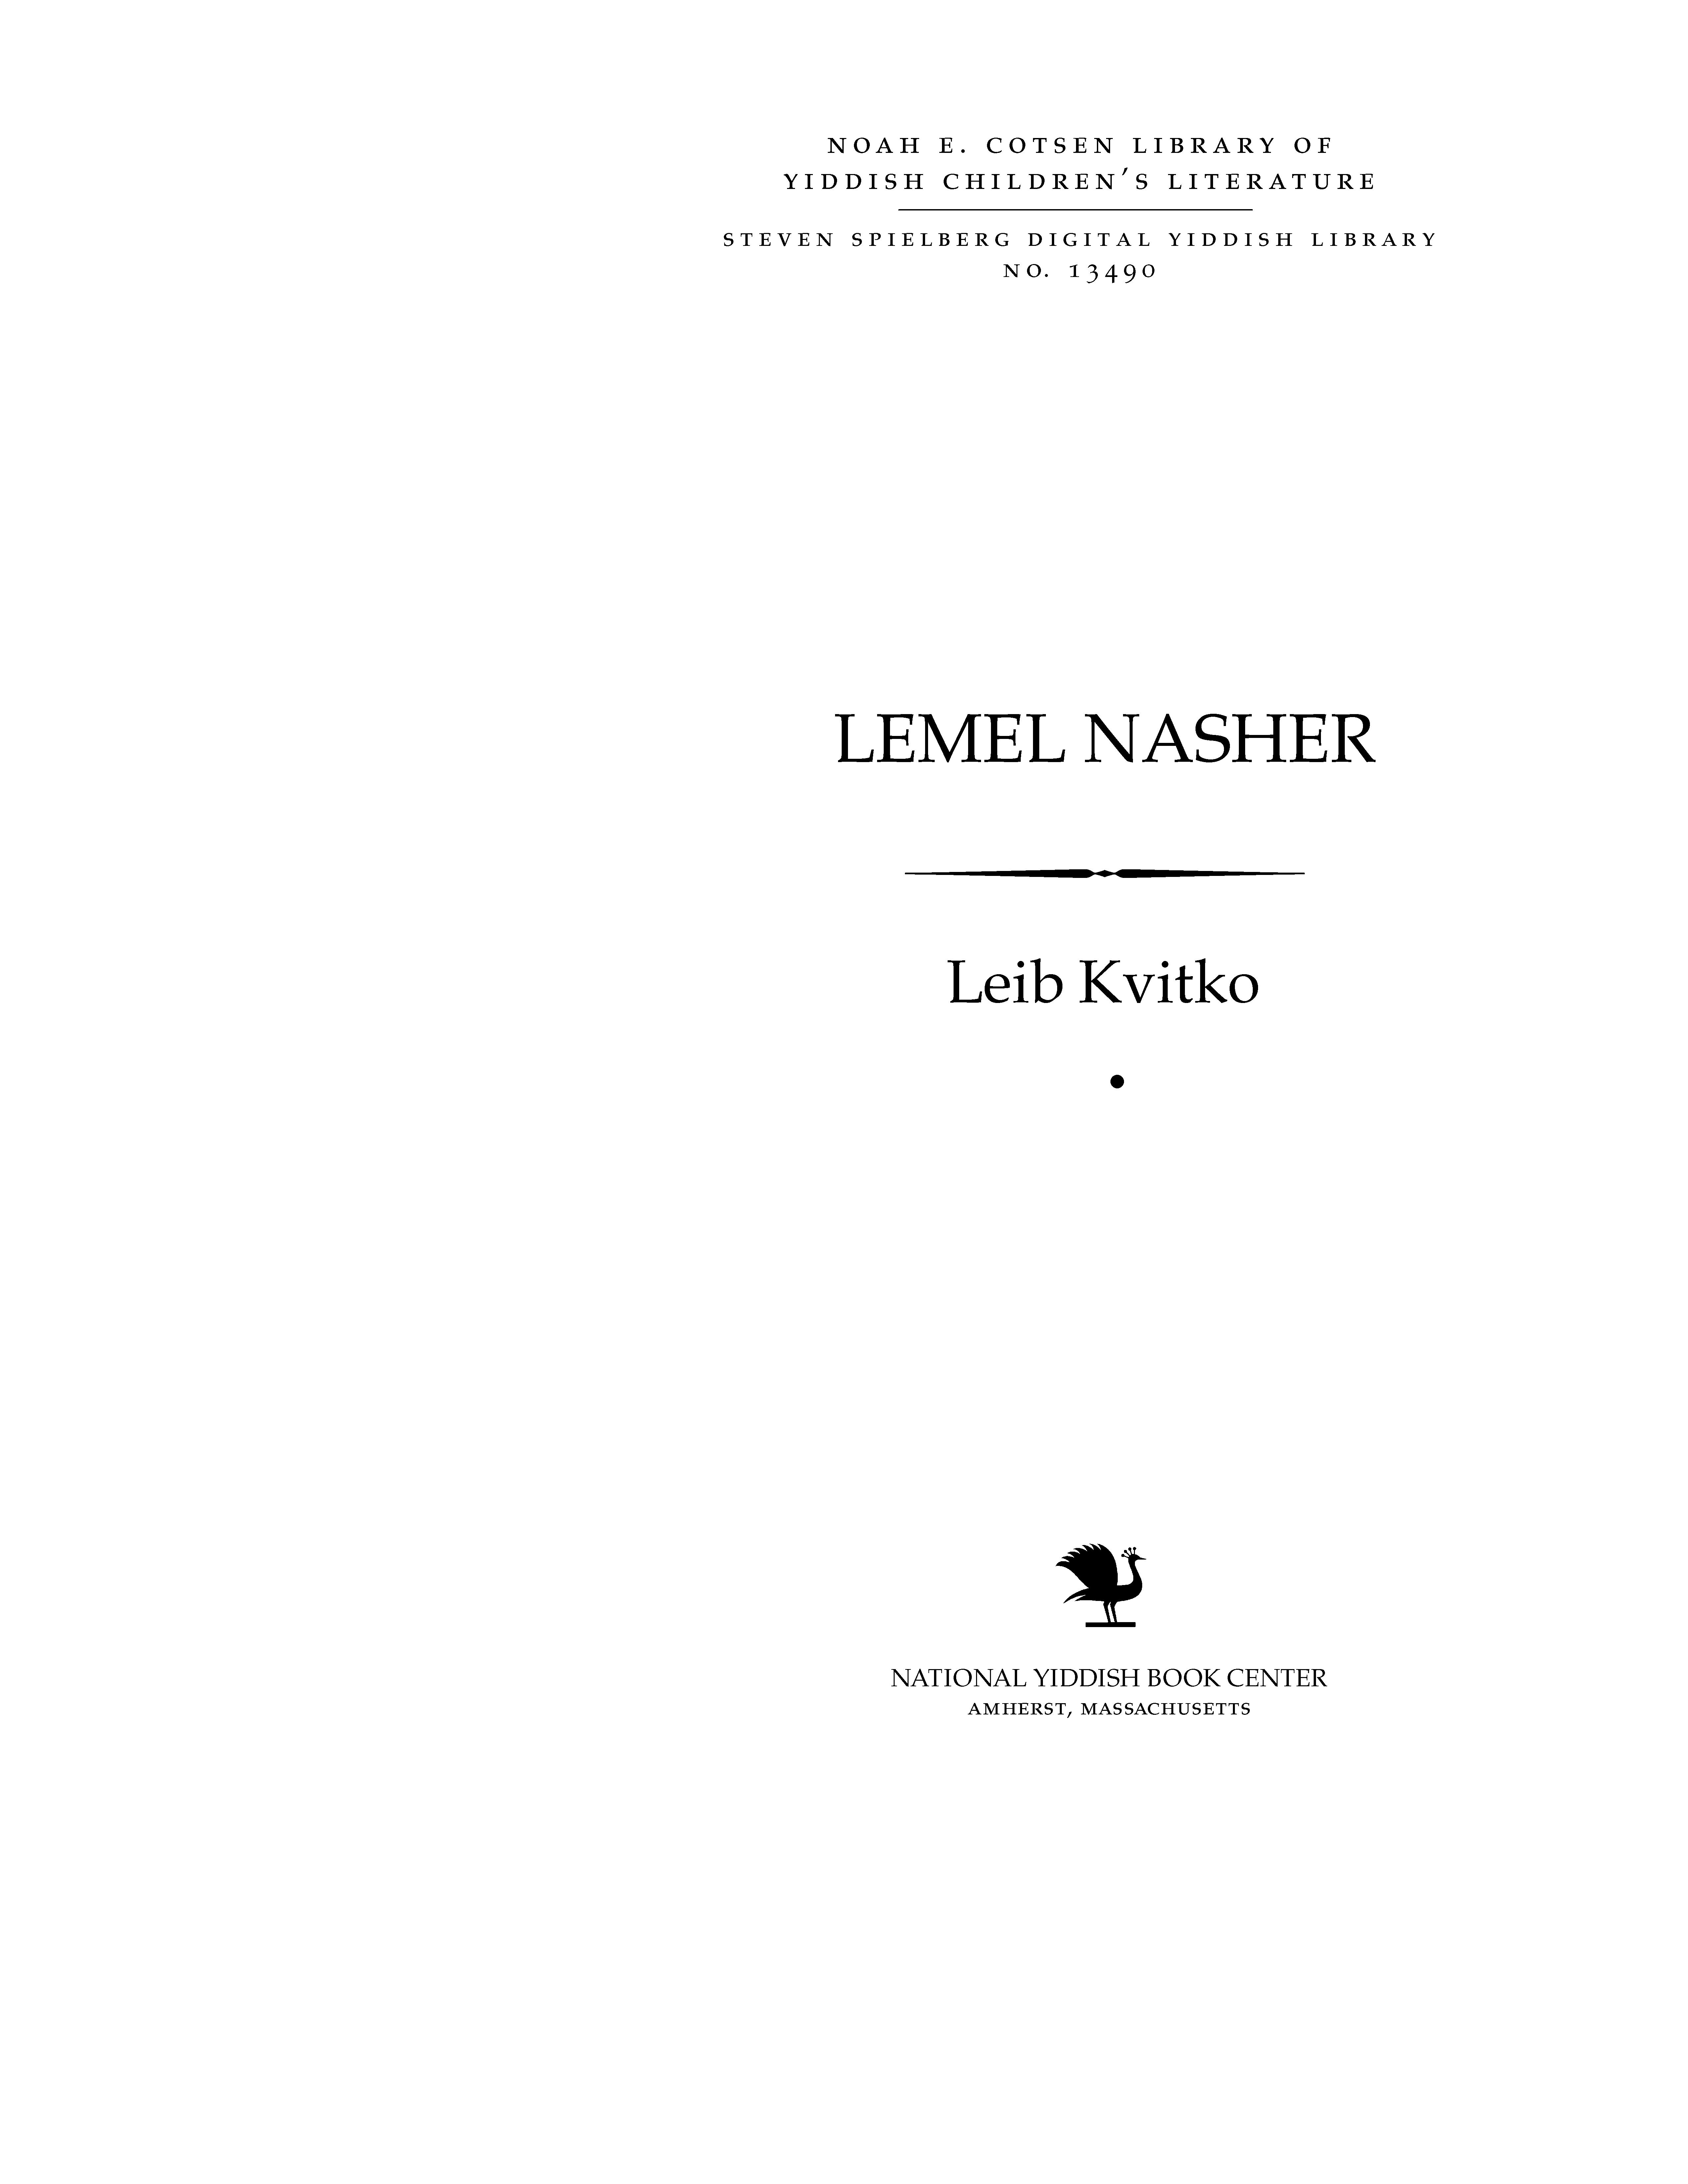 Cover of: Leml nasher